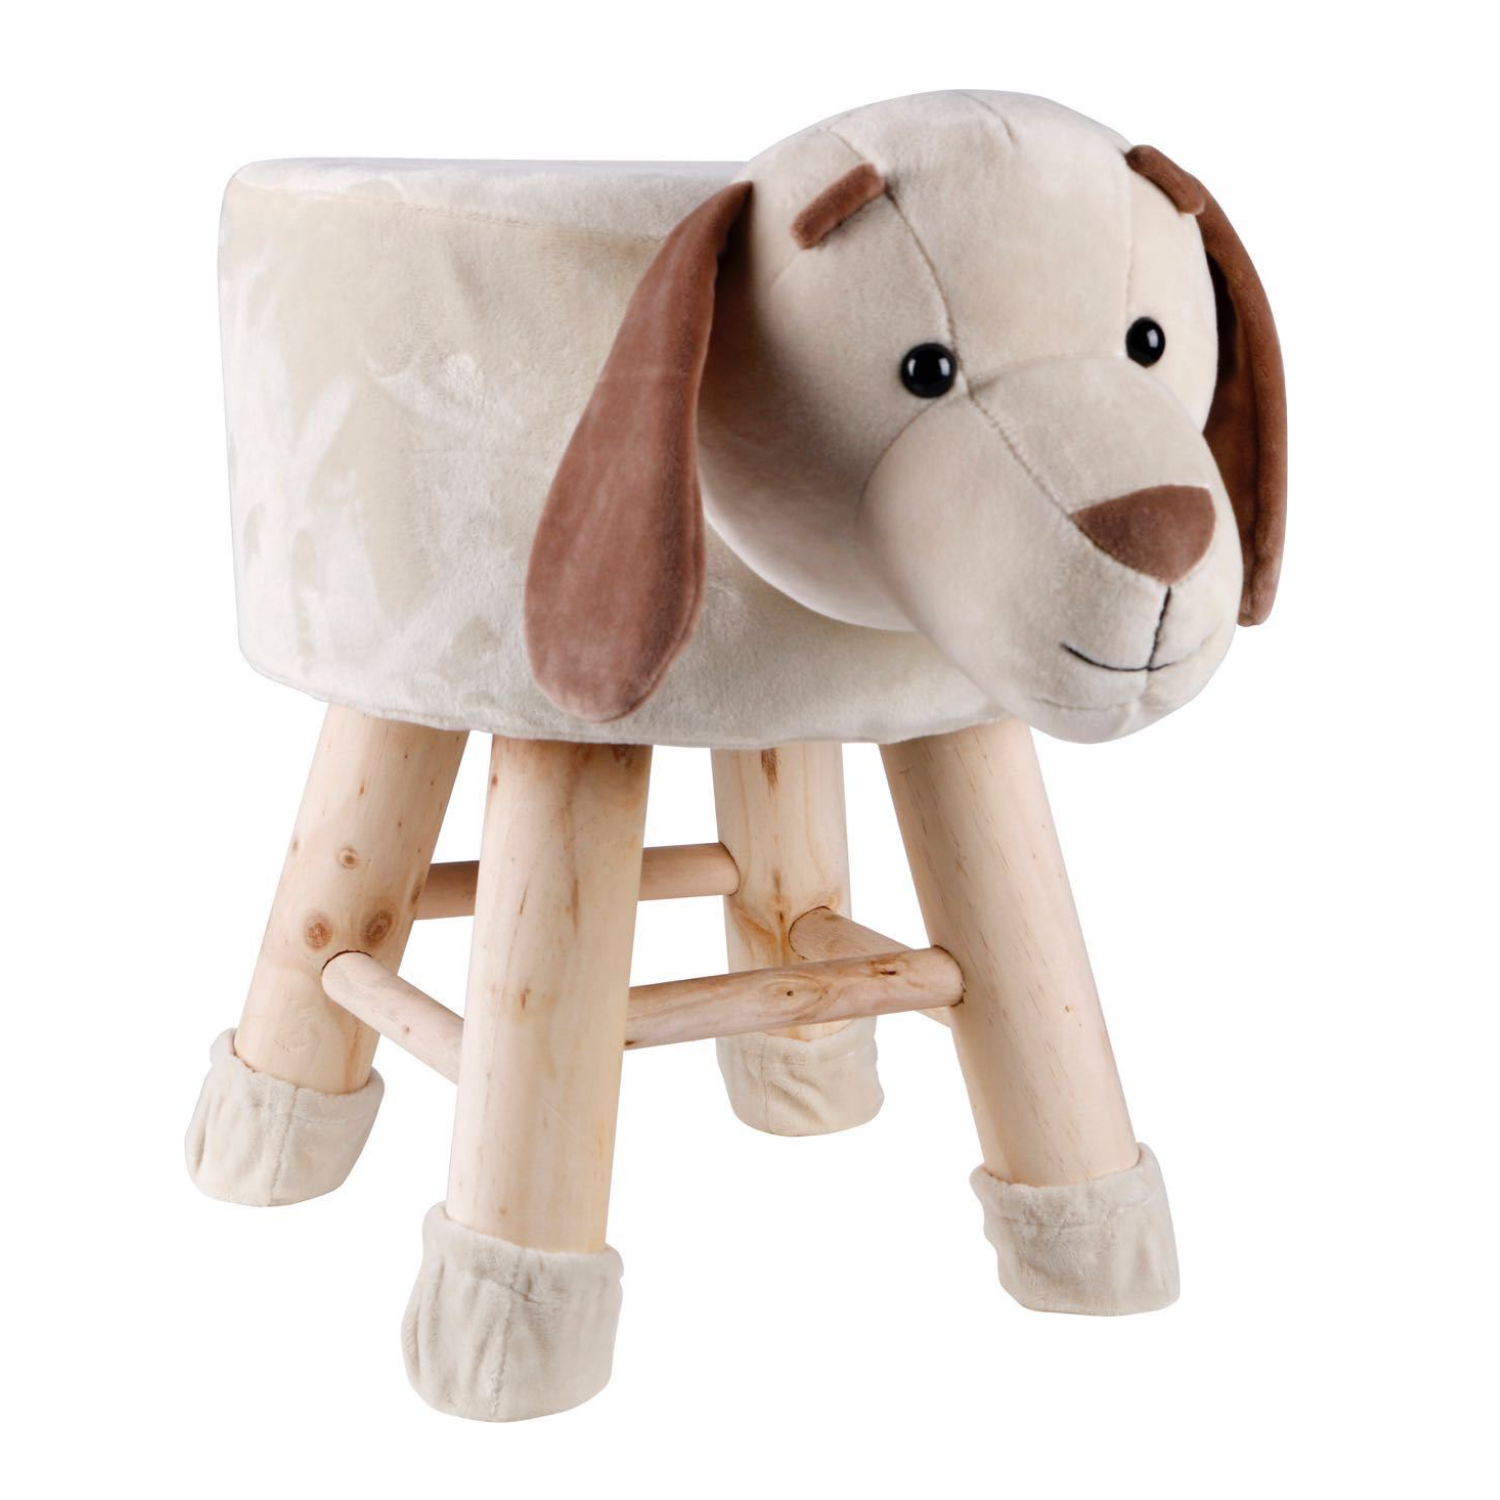 Wooden Animal Stool for Kids (Dog)| With Removable Soft Fabric Cover | (Beige) - Best Price Company India